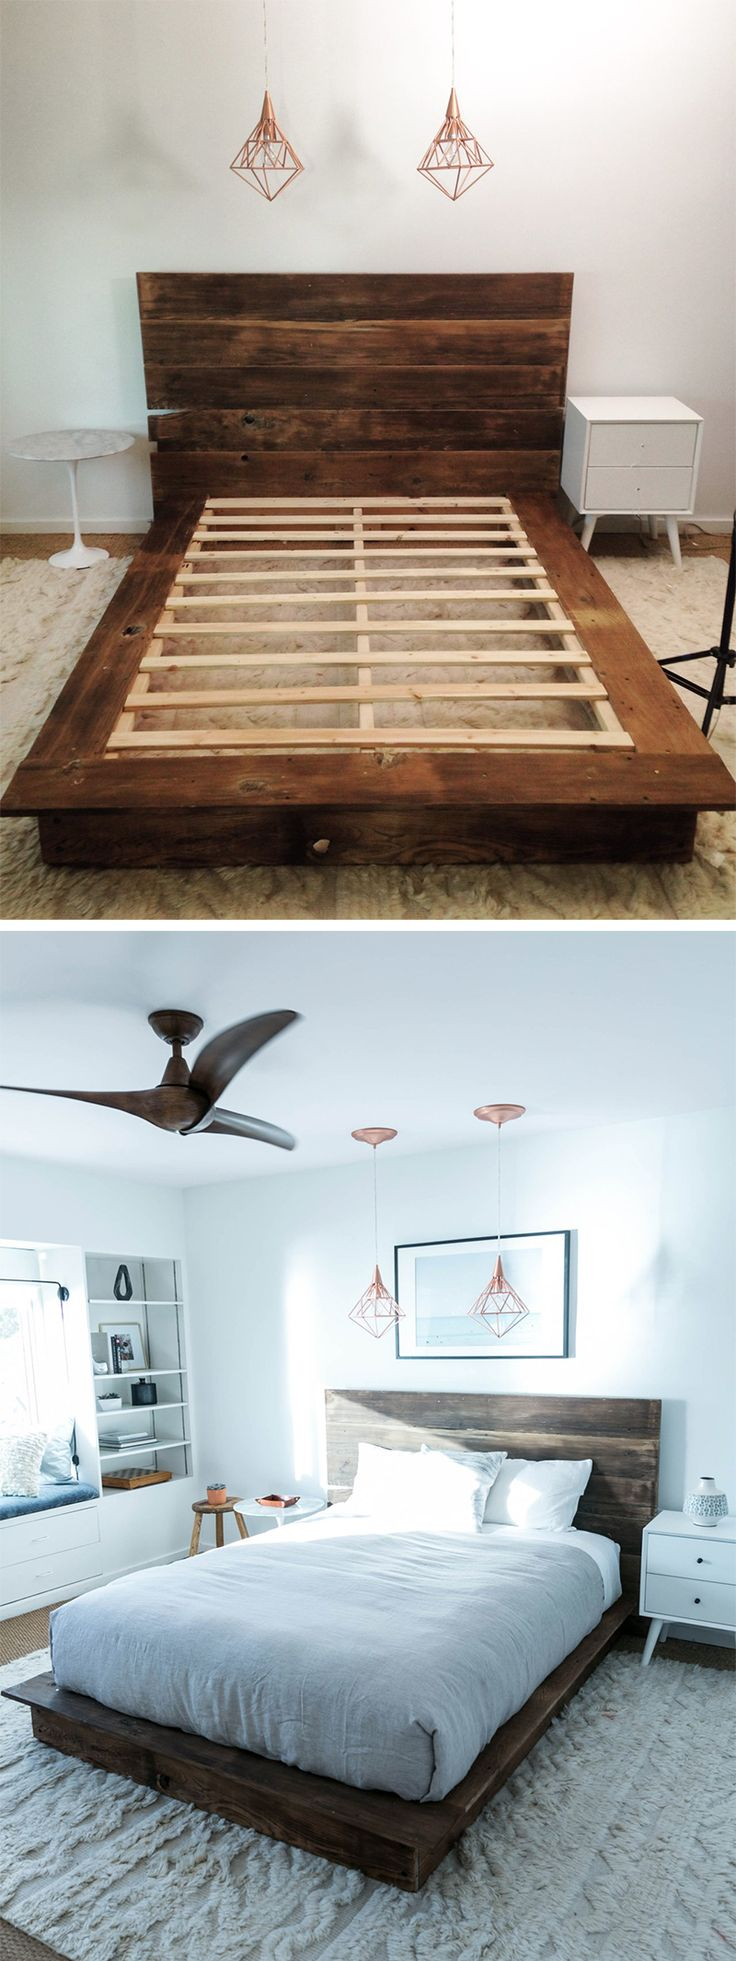 Rustic bed headboard - Diy Reclaimed Wood Platform Bed